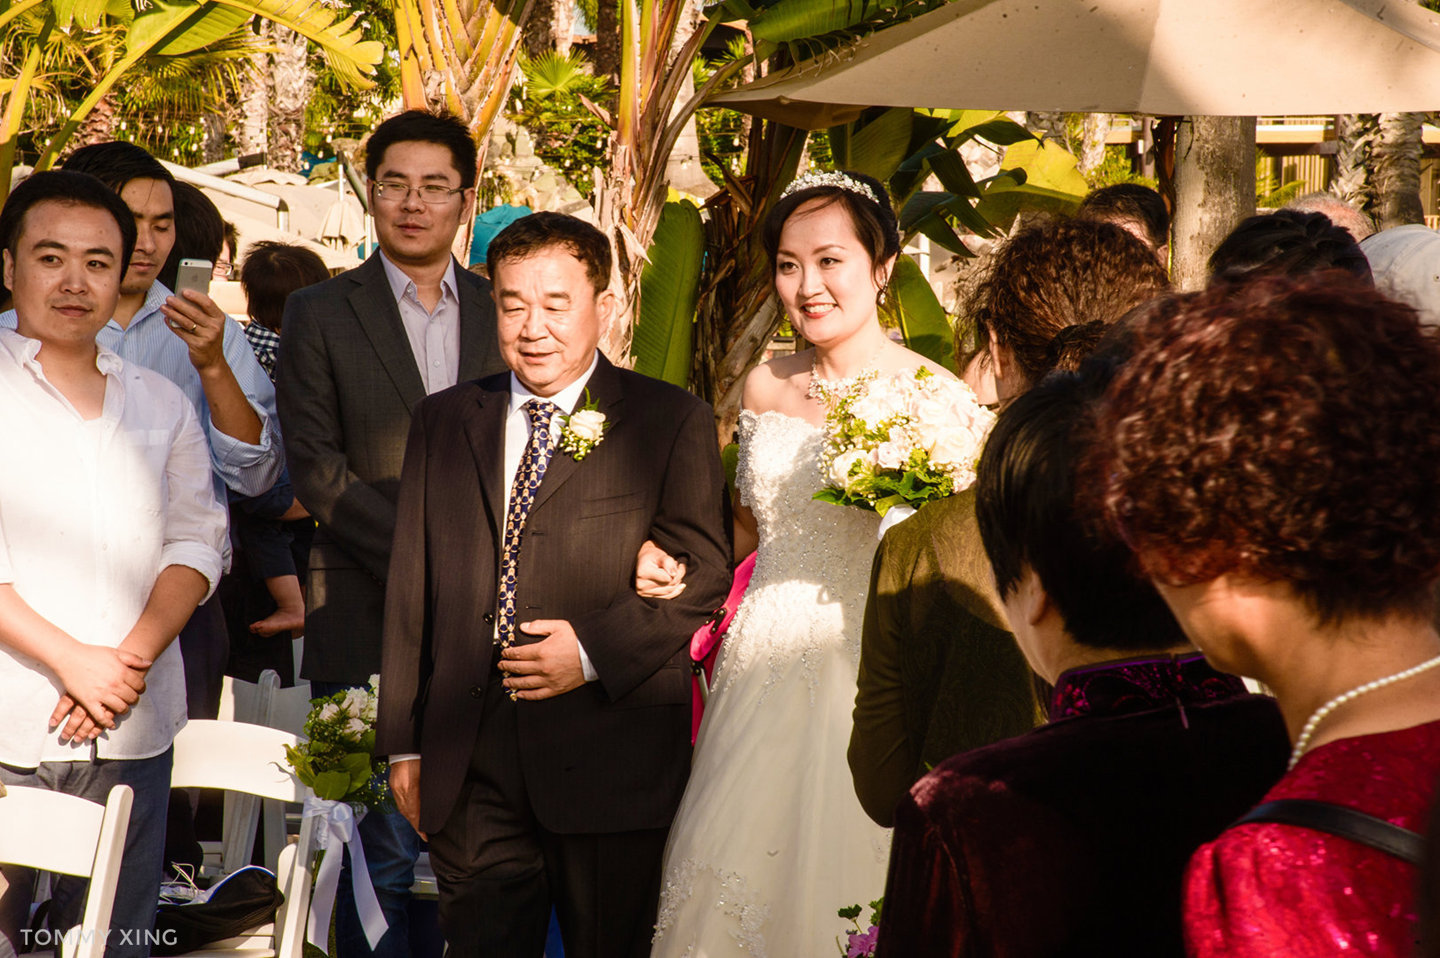 Paradise Point Resort Wedding Xiaolu & Bin San Diego 圣地亚哥婚礼摄影跟拍 Tommy Xing Photography 洛杉矶婚礼婚纱照摄影师 114.jpg